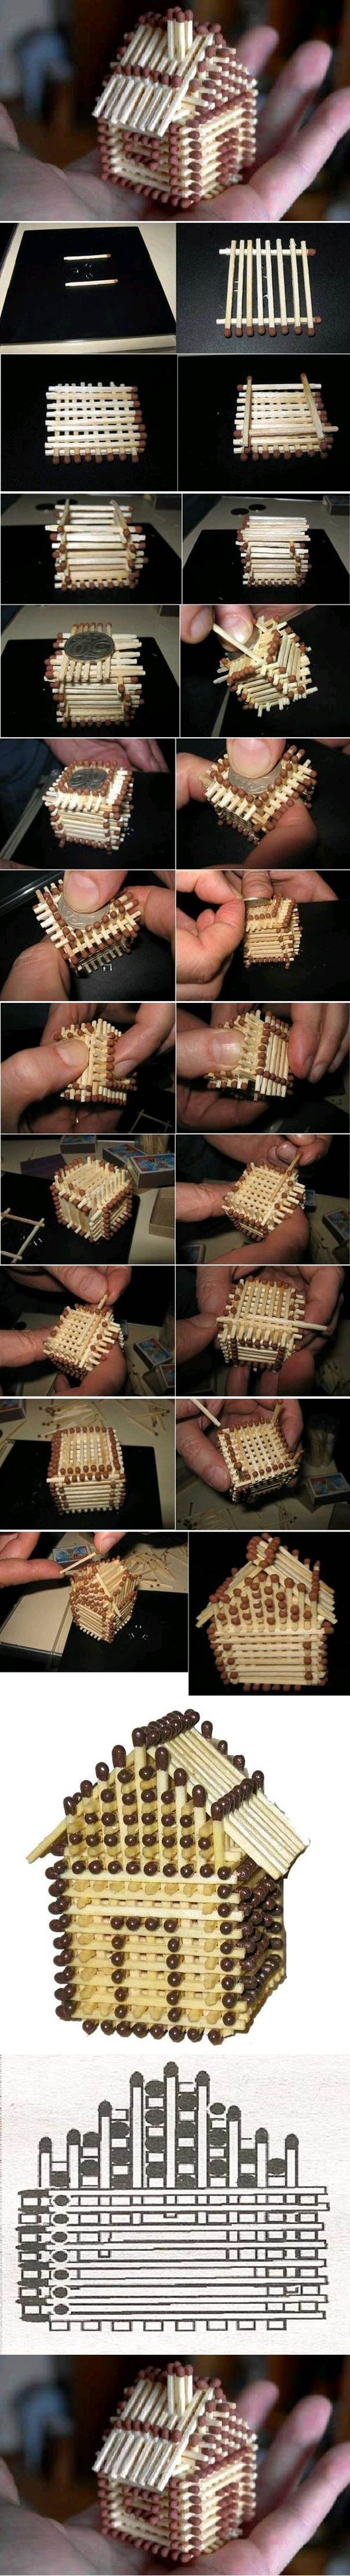 DIY Mini House with Matches 2